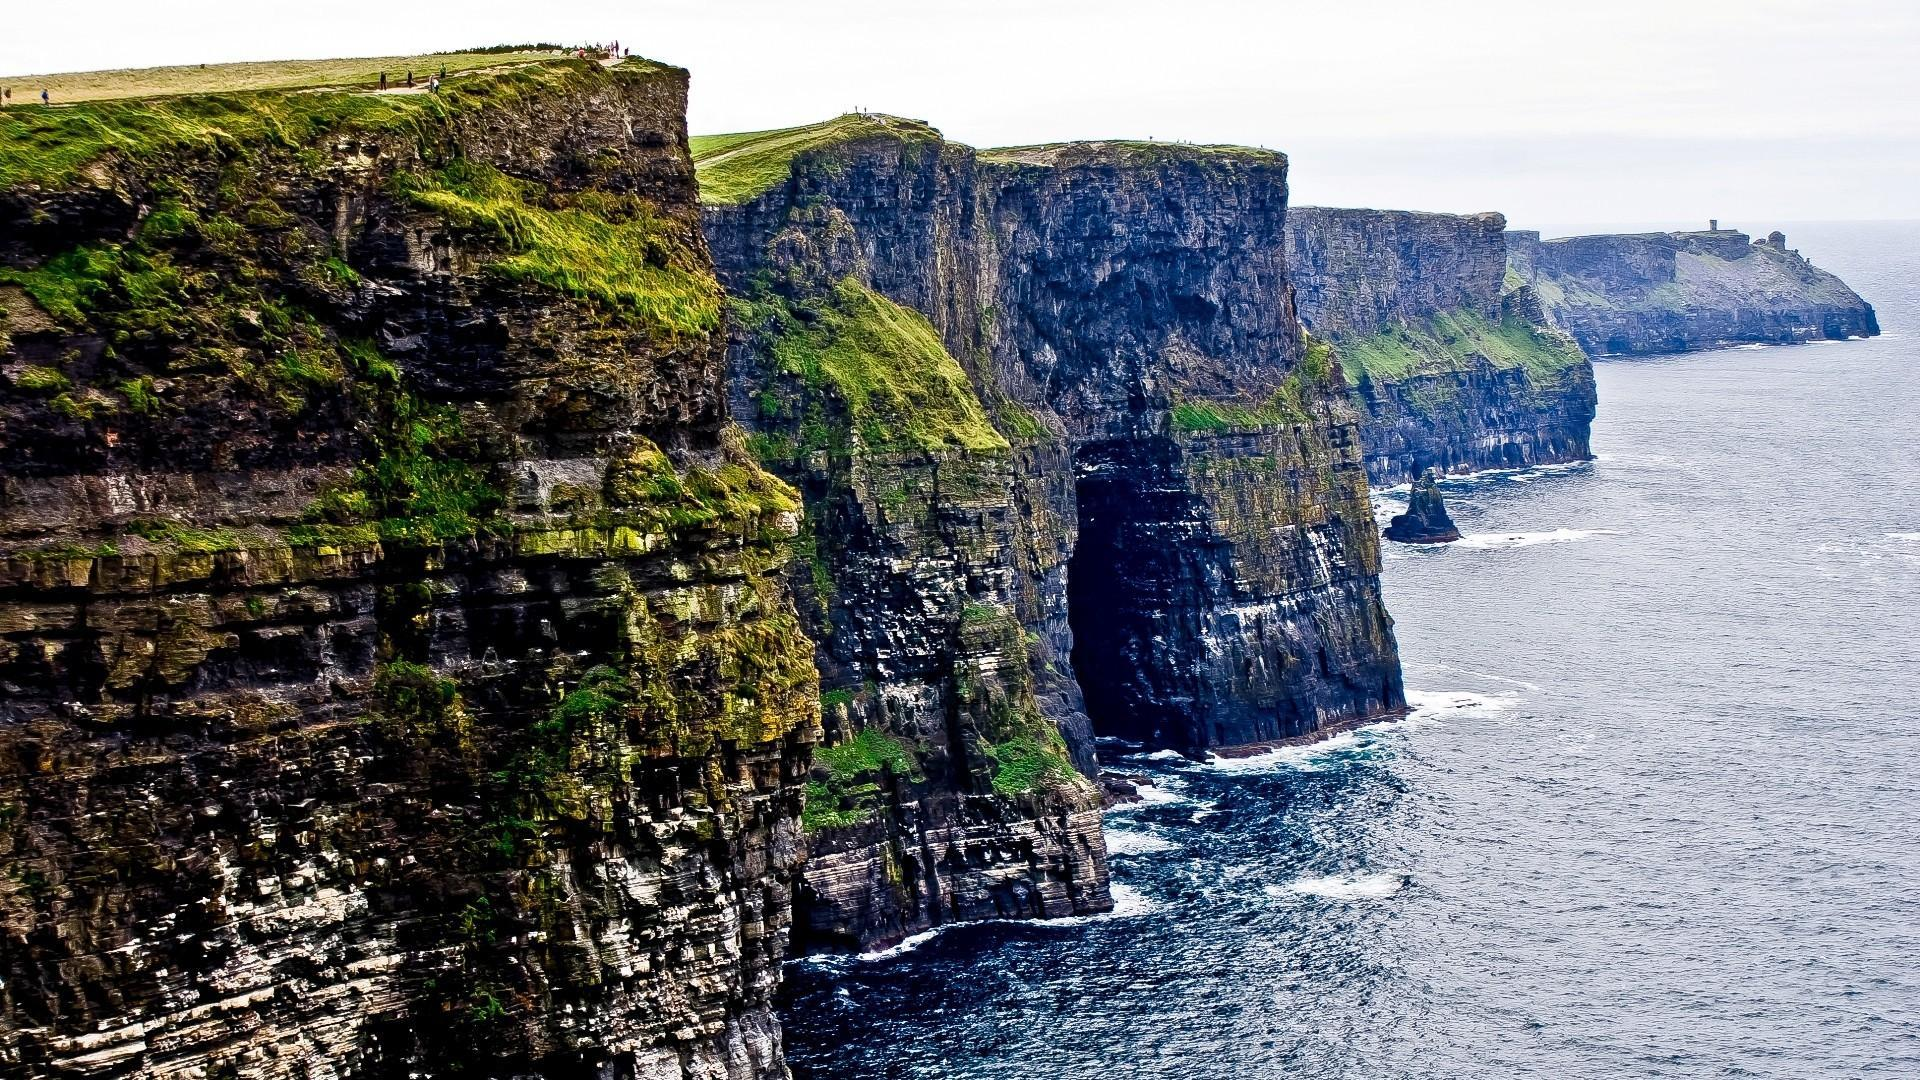 Cliffs of moher galway ireland coast wallpapers